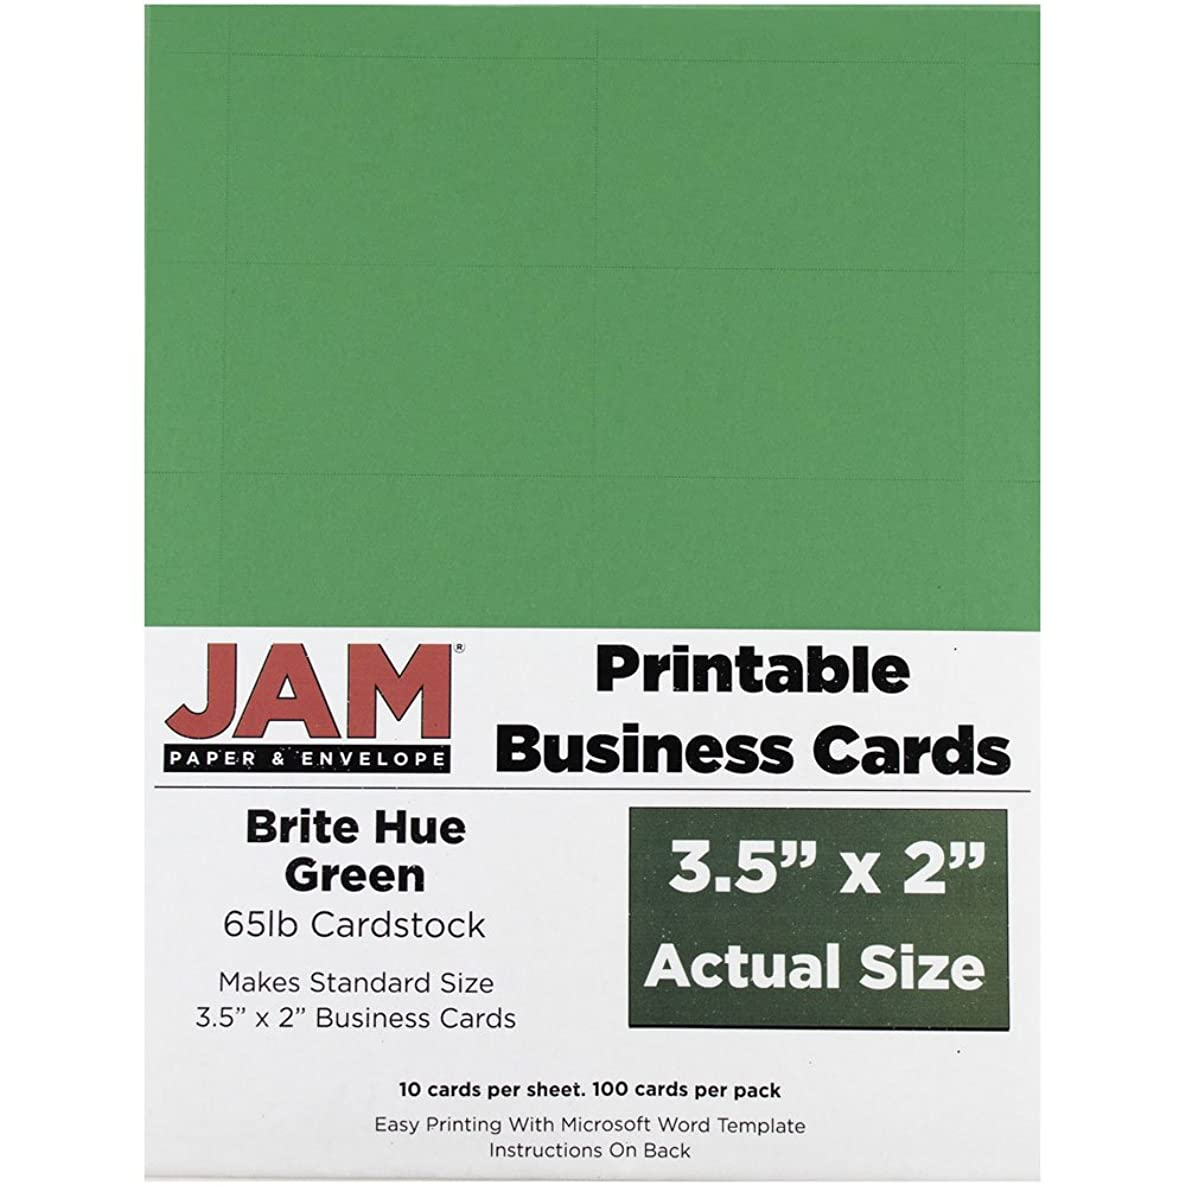 JAM PAPER Printable Business Cards - 3 1/2 x 2 - Brite Hue Green - 100/Pack